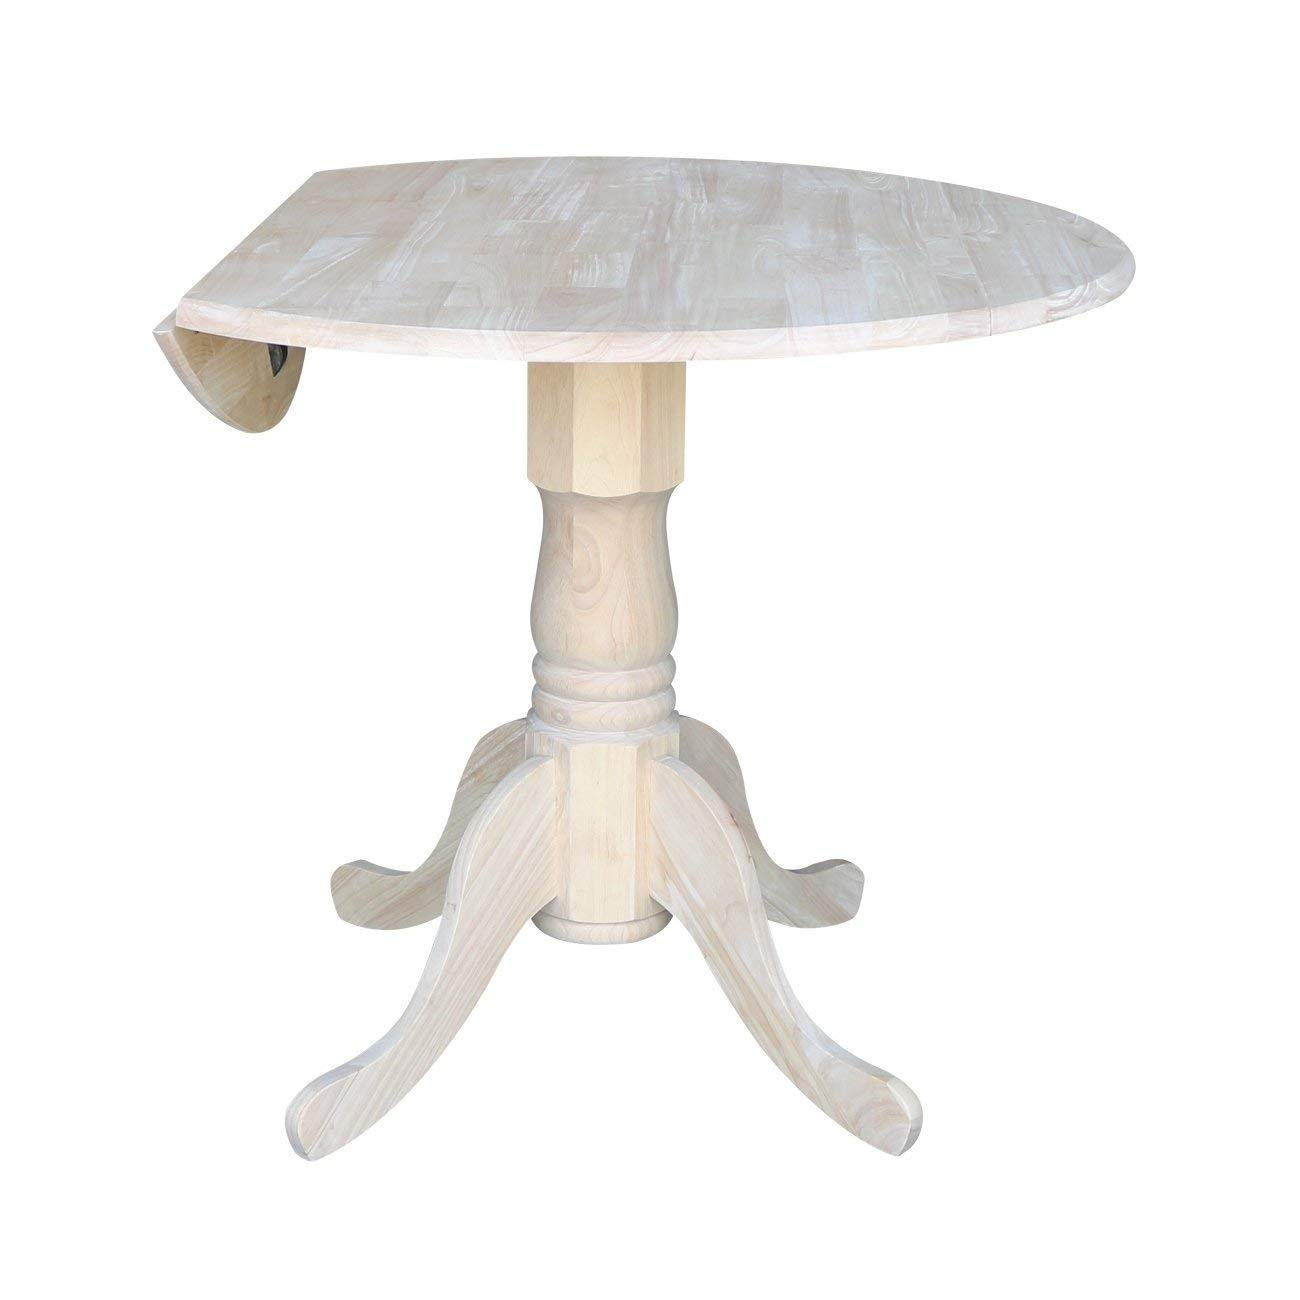 Cheap Primitive Dining Room, Find Primitive Dining Room With Regard To 2018 Aztec Round Pedestal Dining Tables (View 21 of 25)